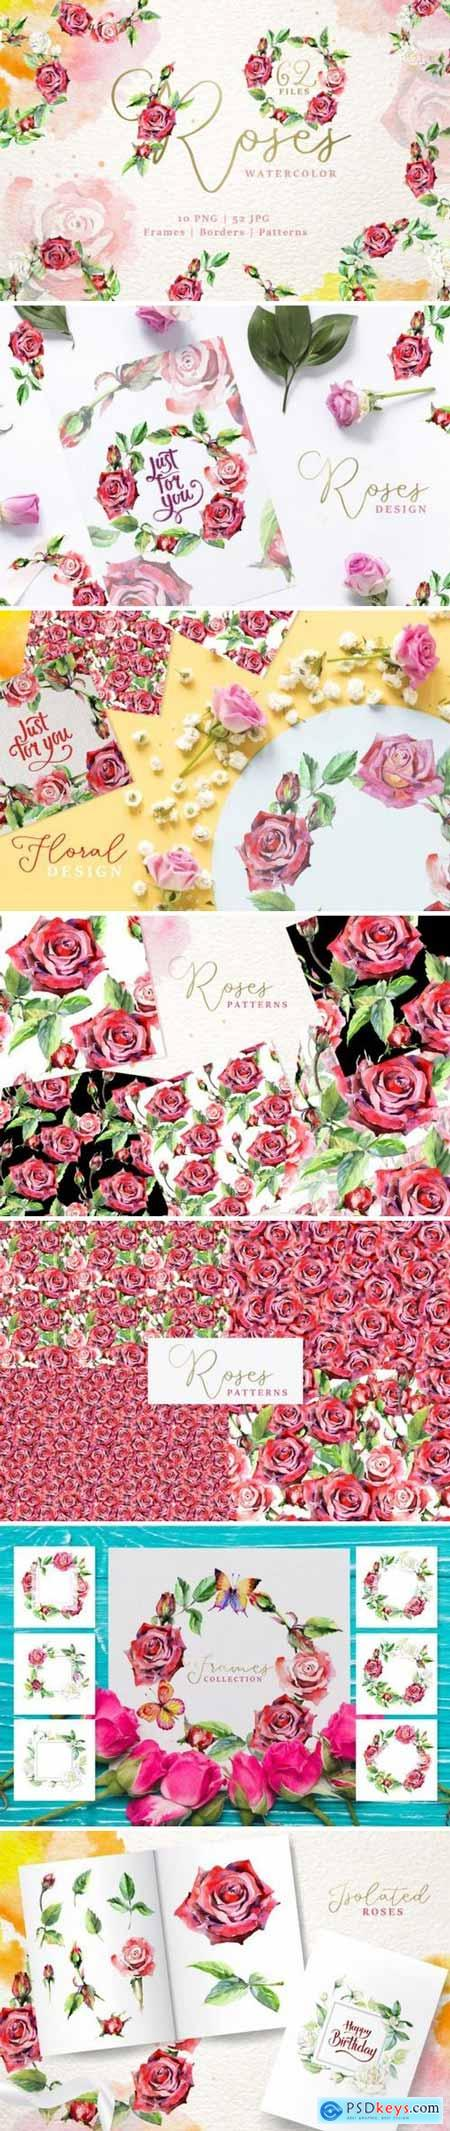 Creativemarket Wonderful watercolor red roses PNG